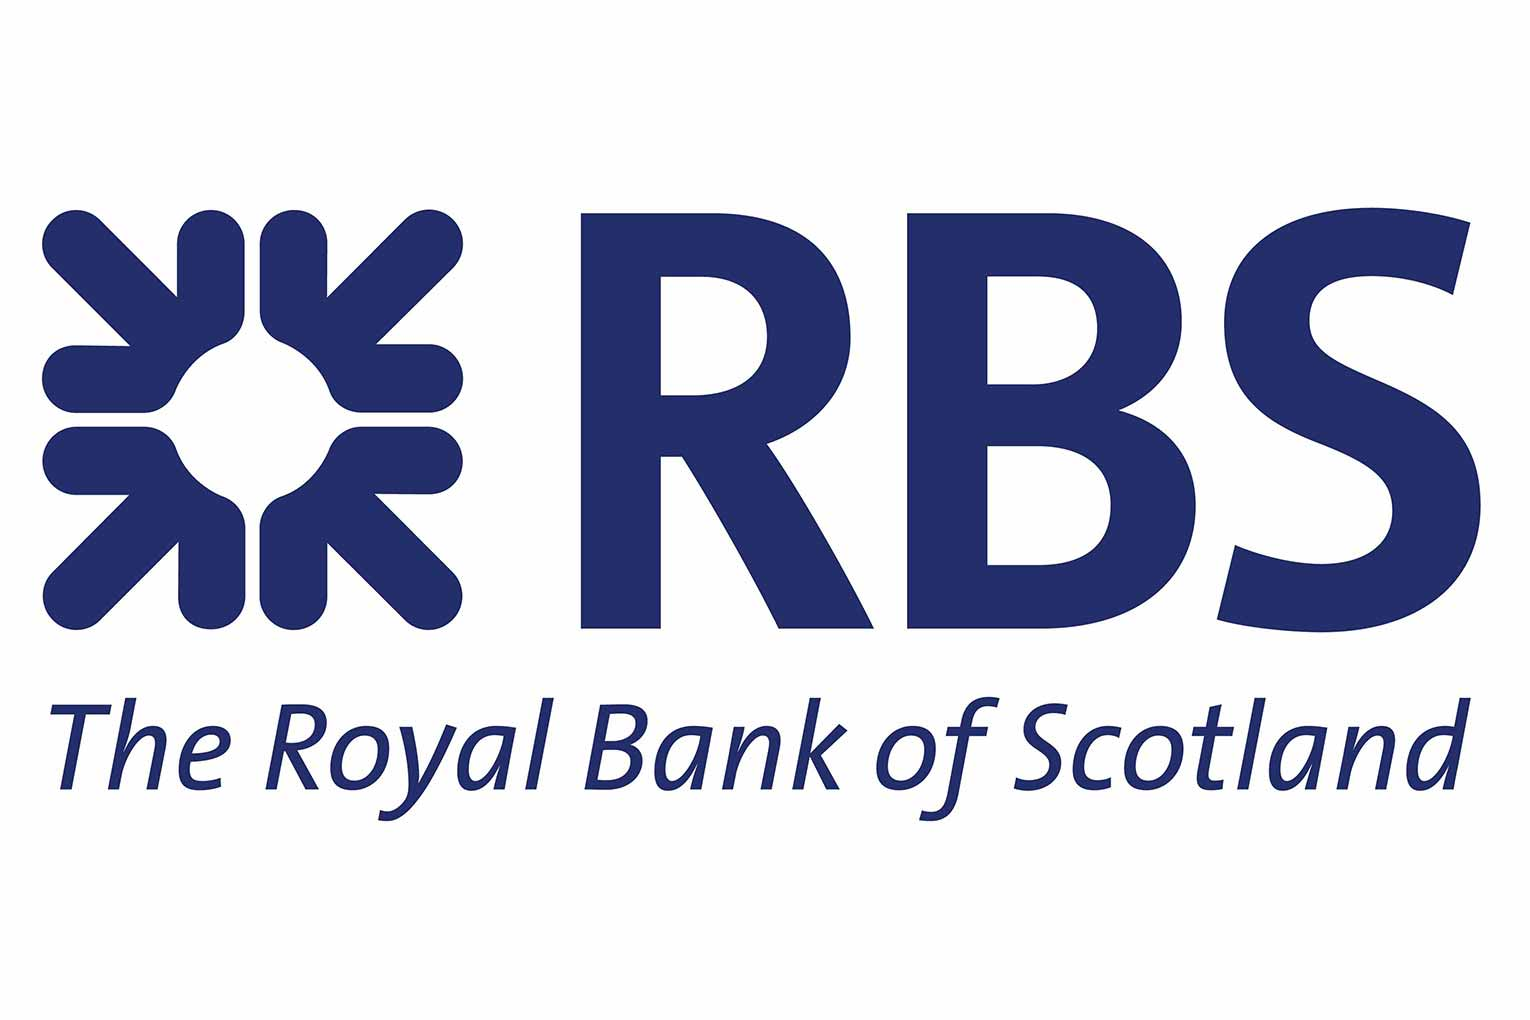 USA  settlement looms over RBS results